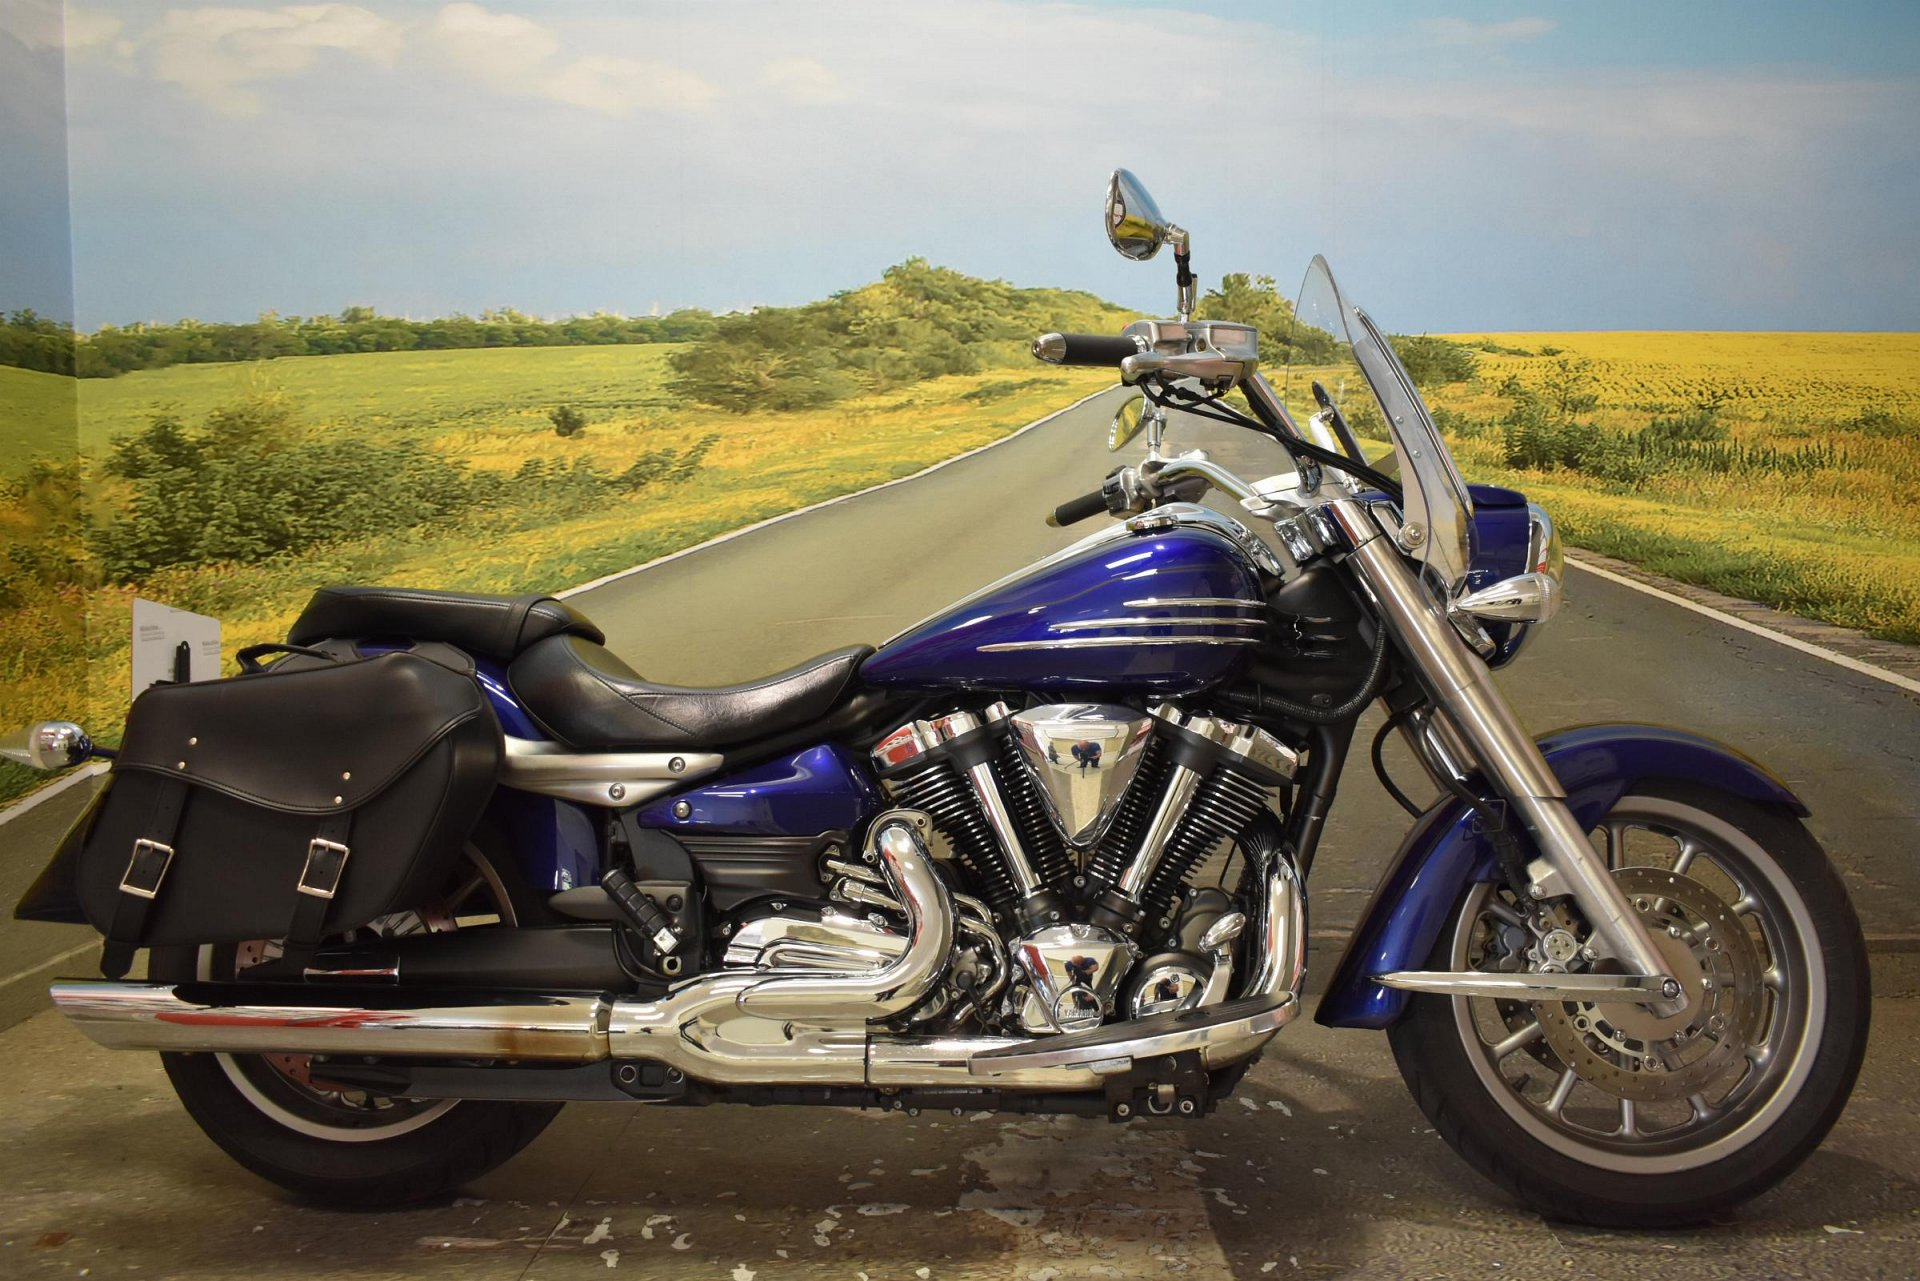 2013 Yamaha XV1900 for sale in Derbyshire